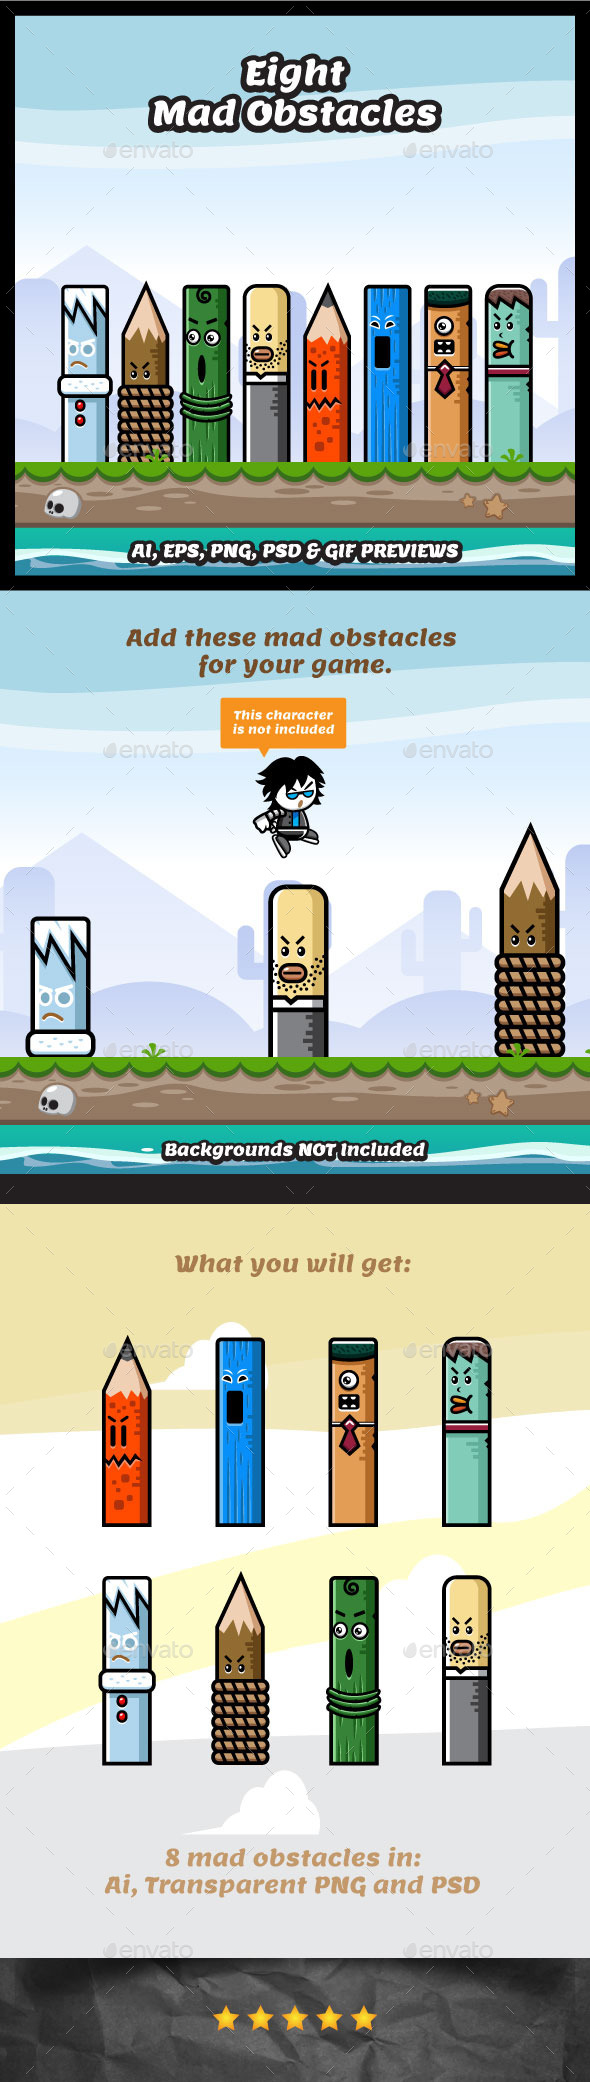 8 Mad Obstacles (Miscellaneous)